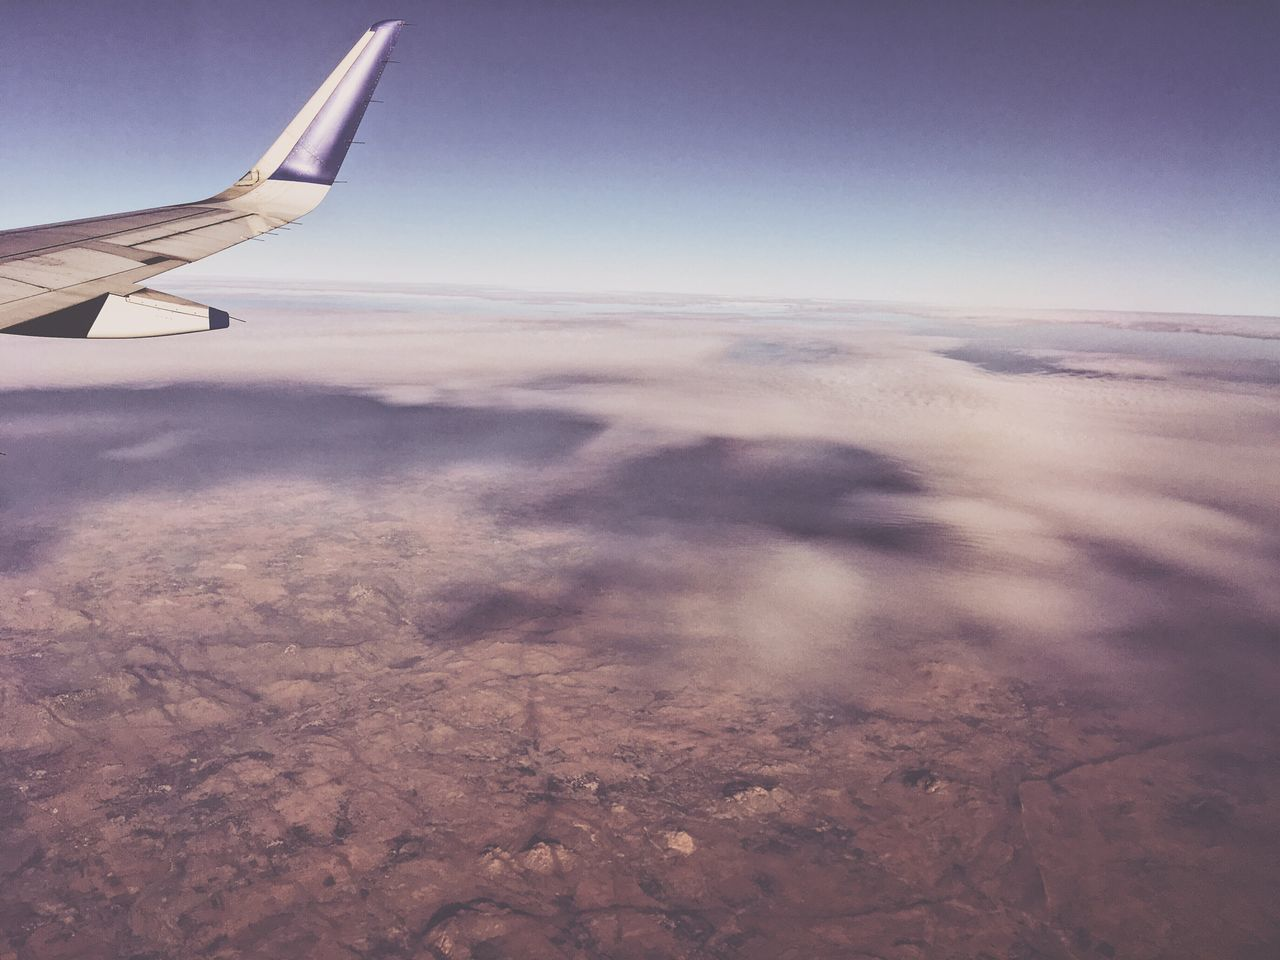 IPhone Airplane Transportation Flying Sky Aerial View Aircraft Wing Nature Travel Beauty In Nature Landscape Journey Airplane Wing Mid-air Mode Of Transport Aircraft Scenics Air Vehicle Cloud - Sky Outdoors No People IPhoneography